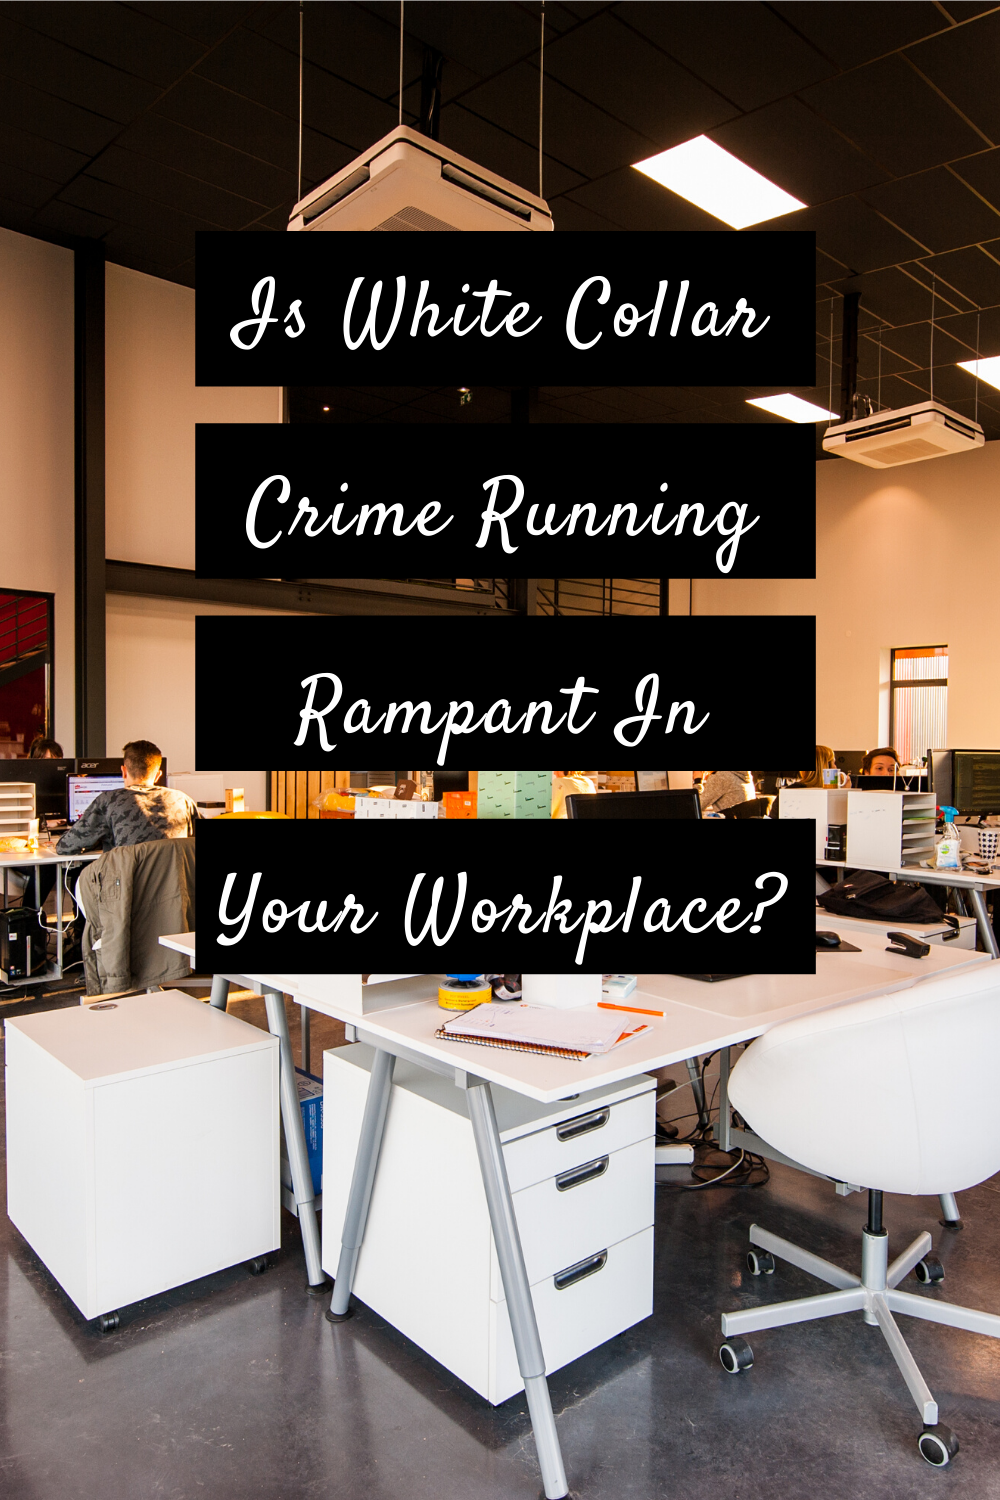 Is White Collar Crime Running Rampant In Your Workplace?